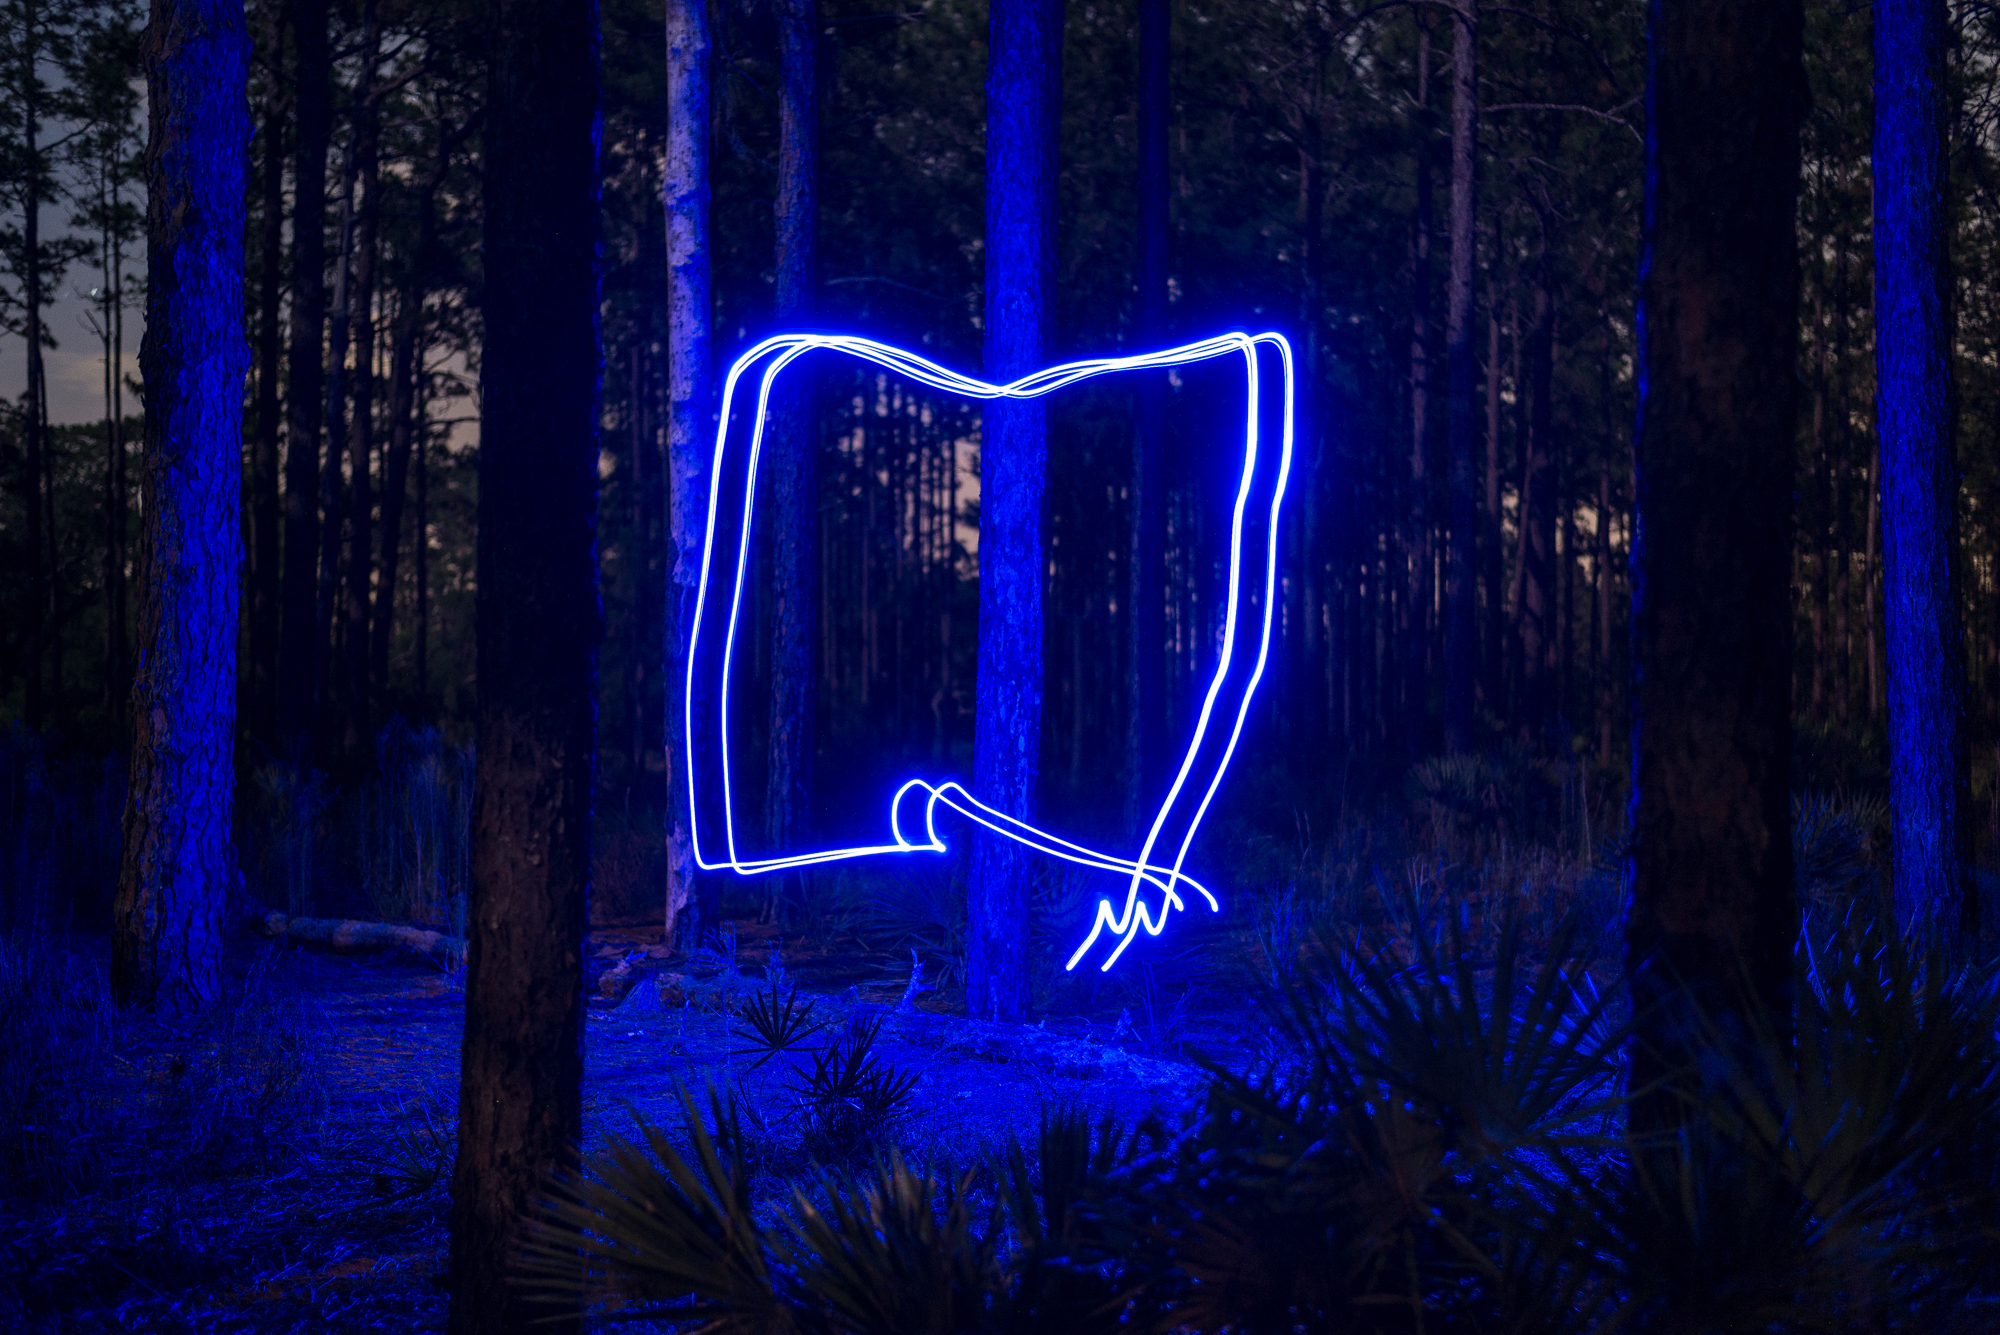 This is the image we created in camera by attaching blue LEDs to a drone.